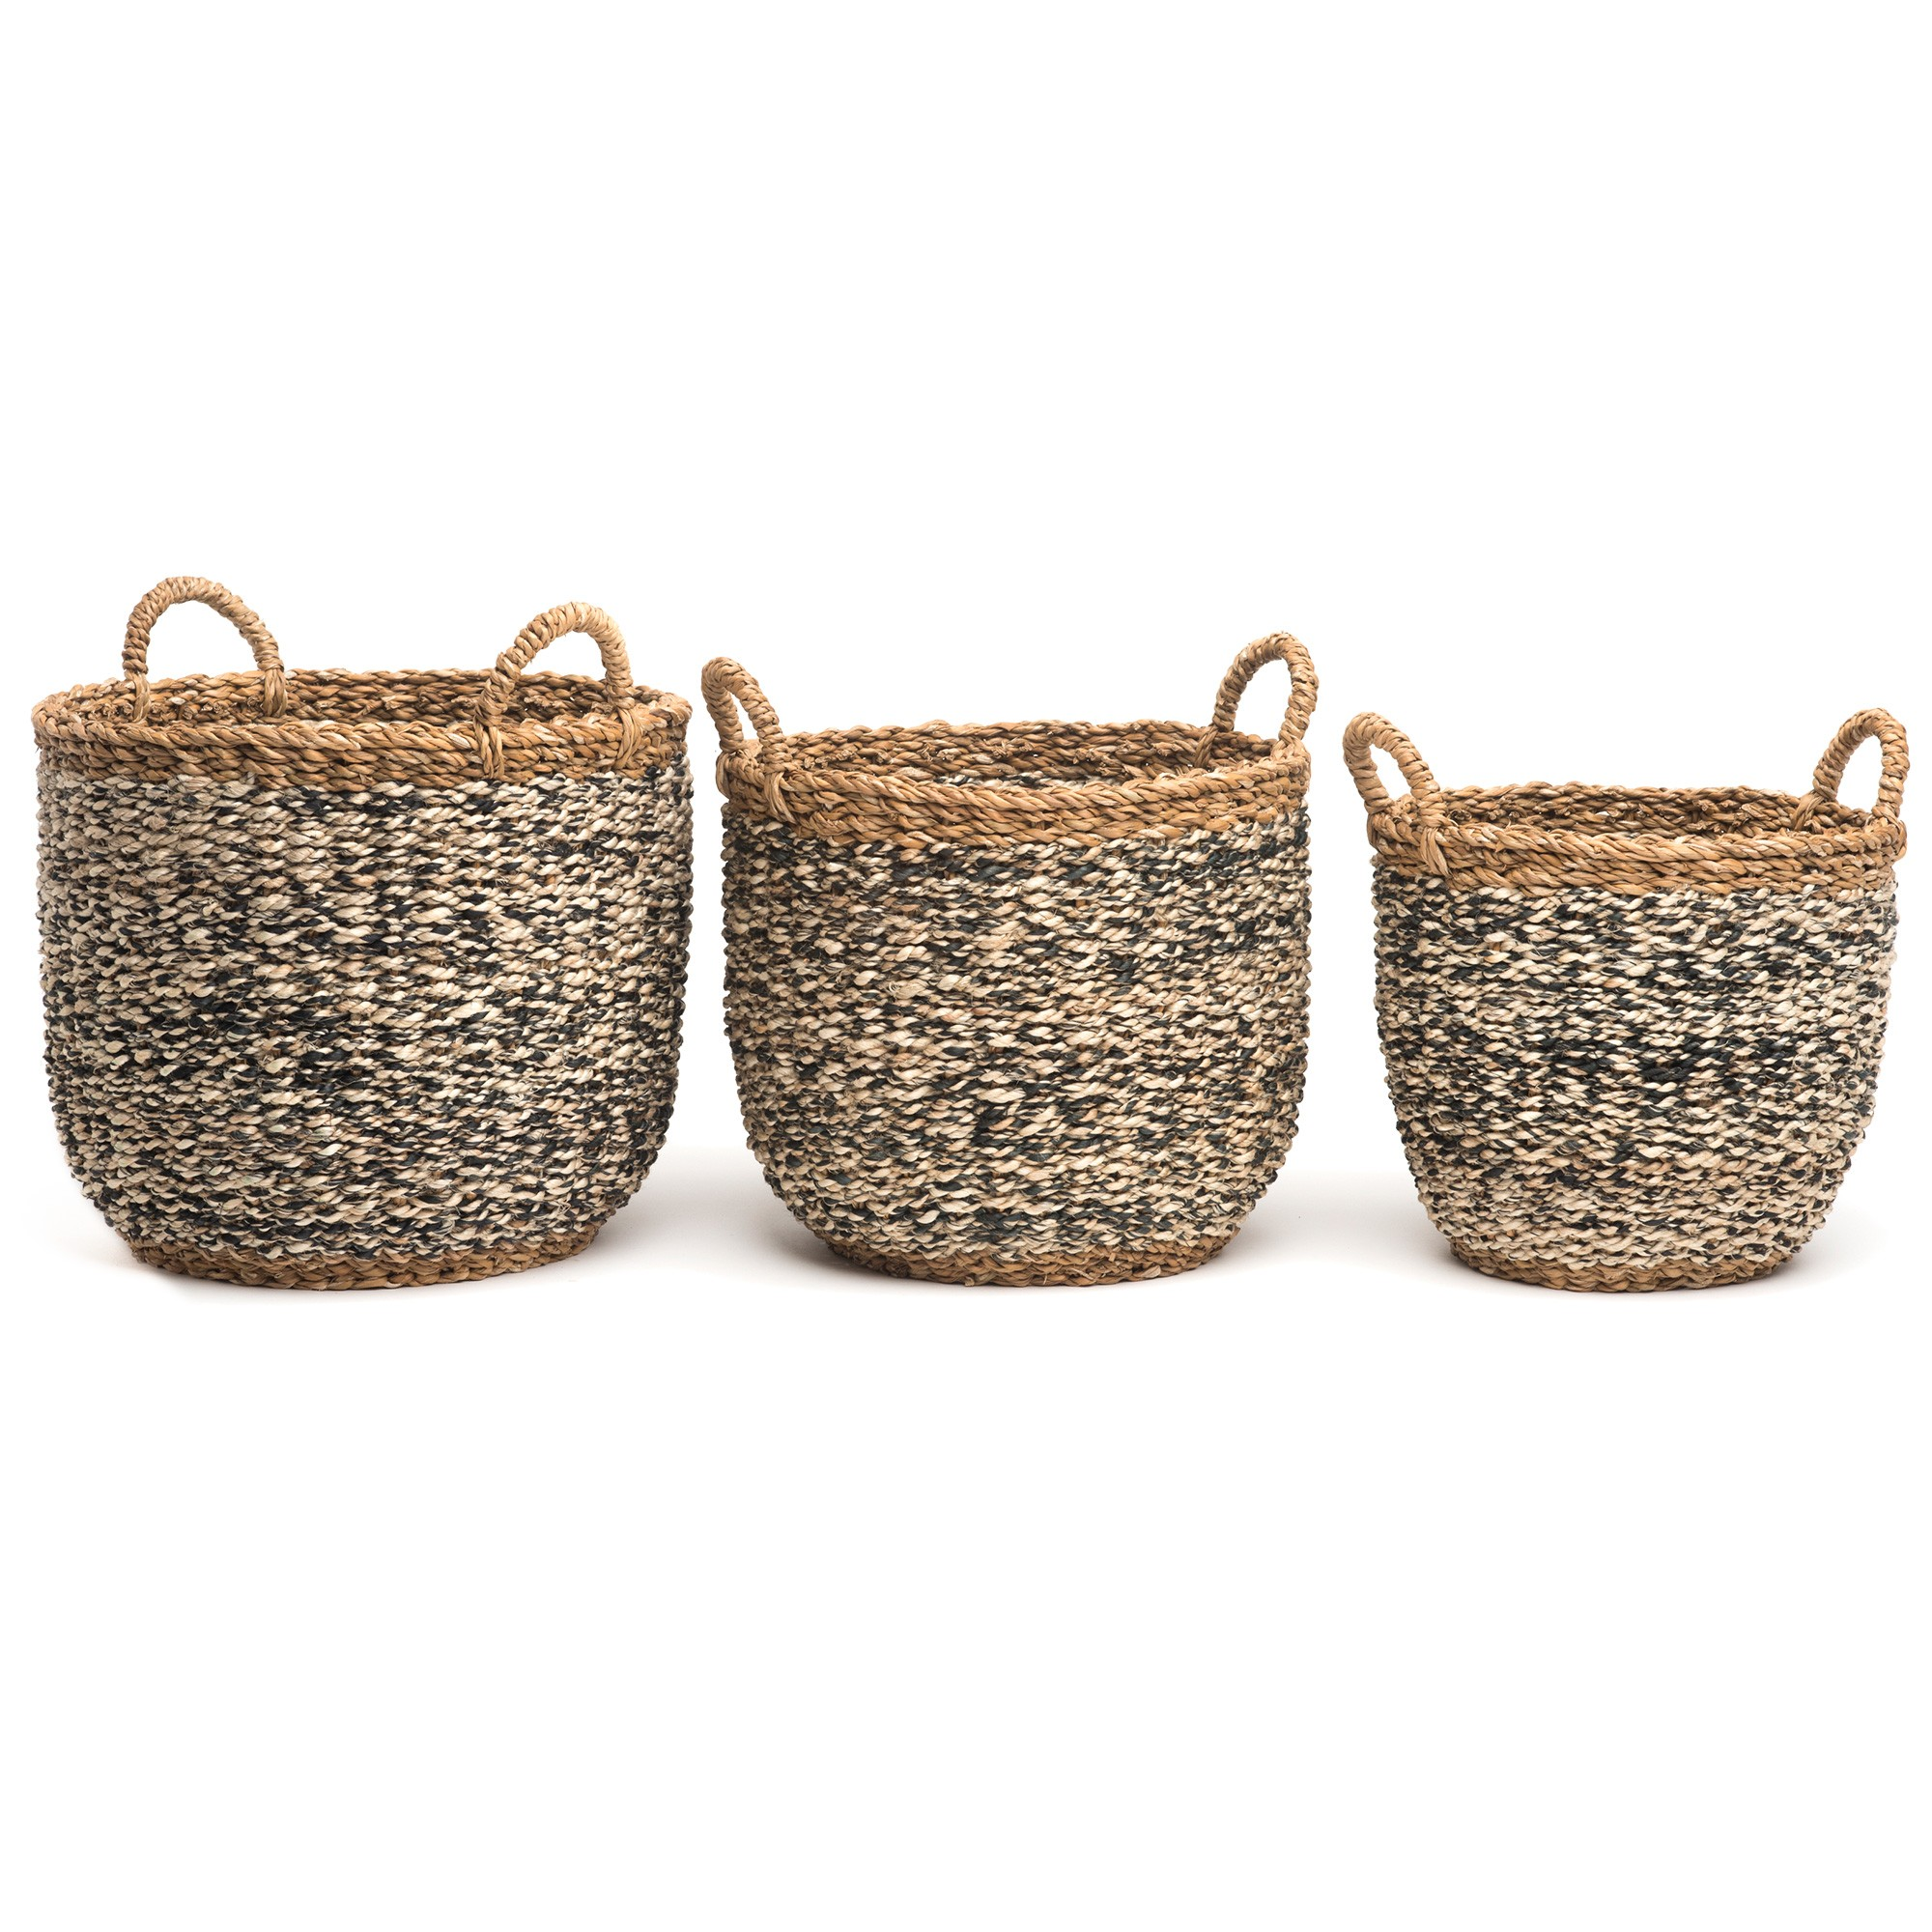 Ebony 3 Piece Handmade Seagrass & Jute Basket Set